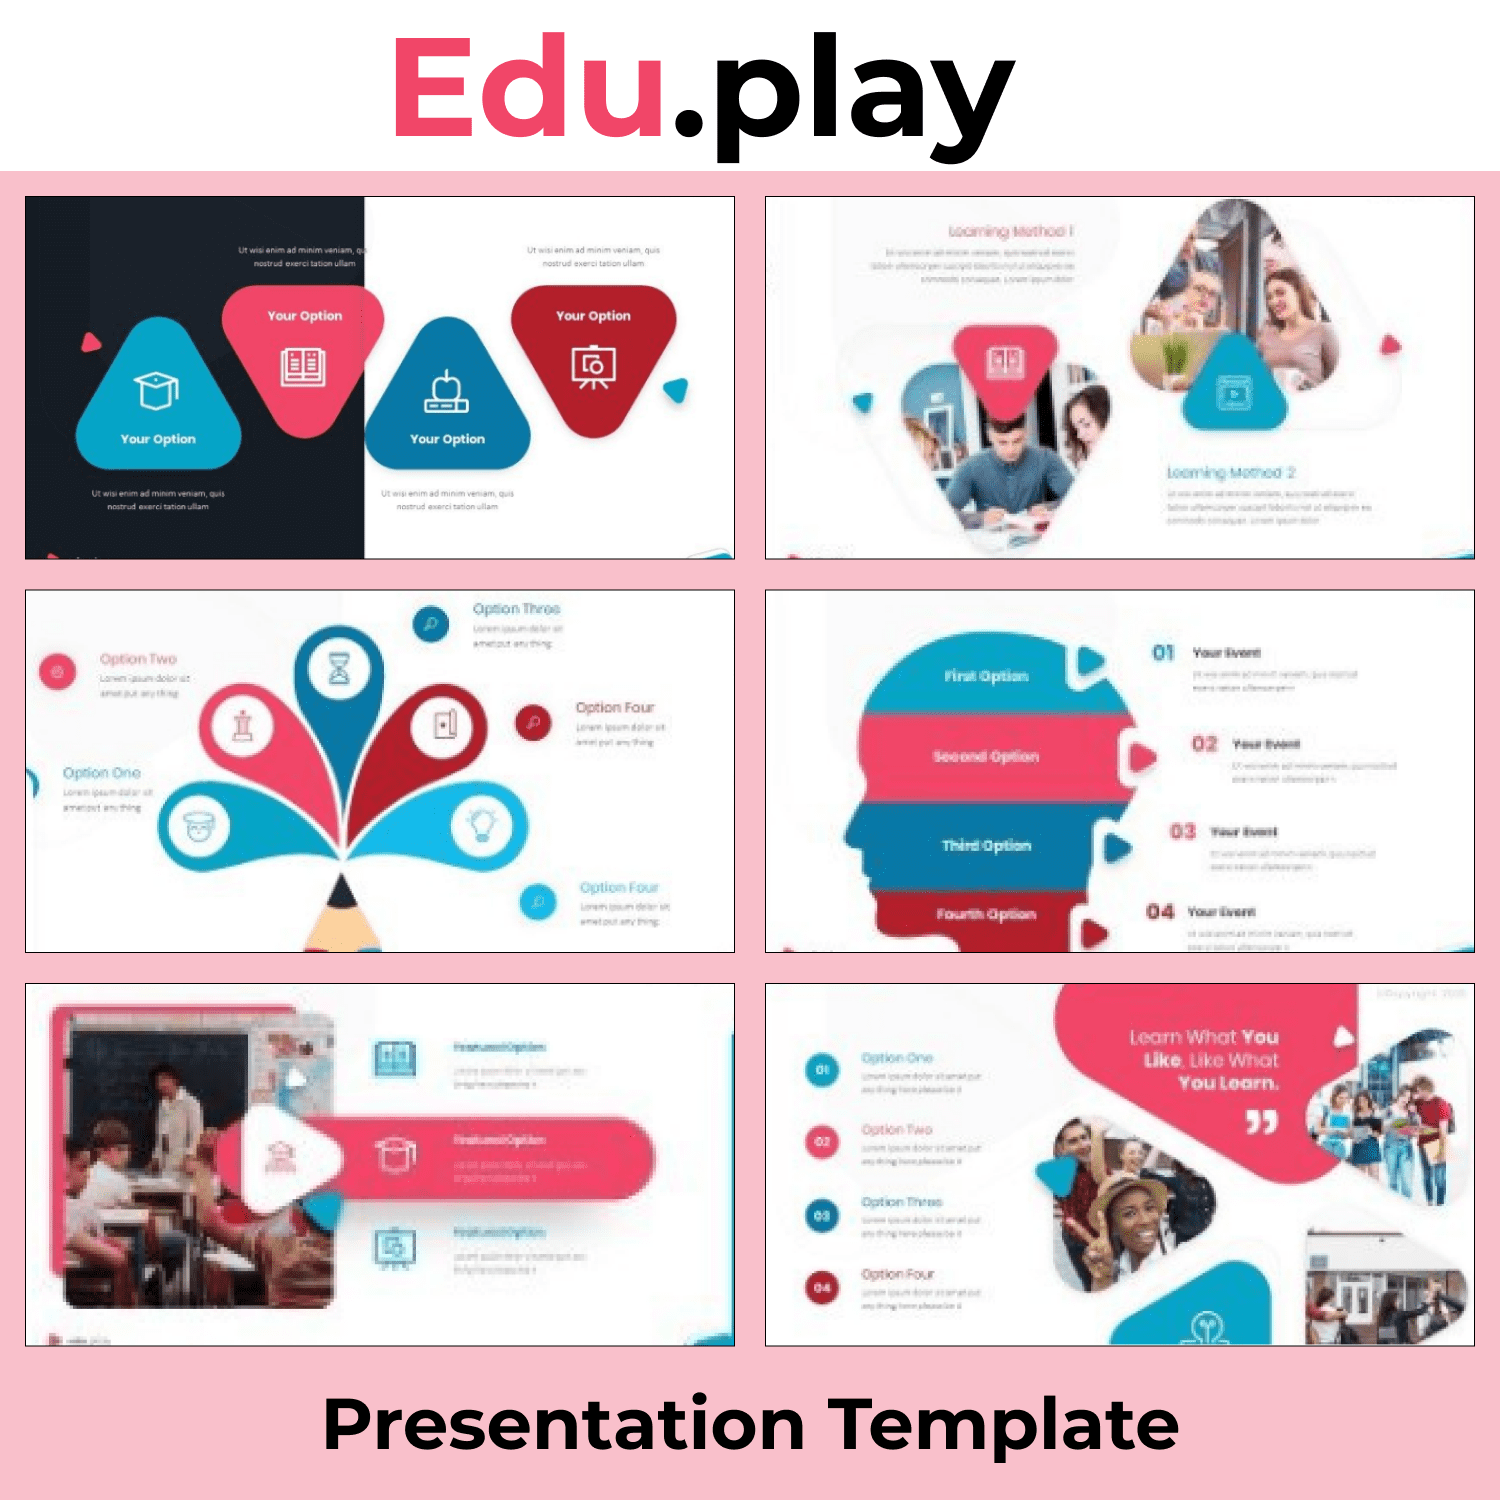 Eduplay Smart Powerpoint Template cover image.